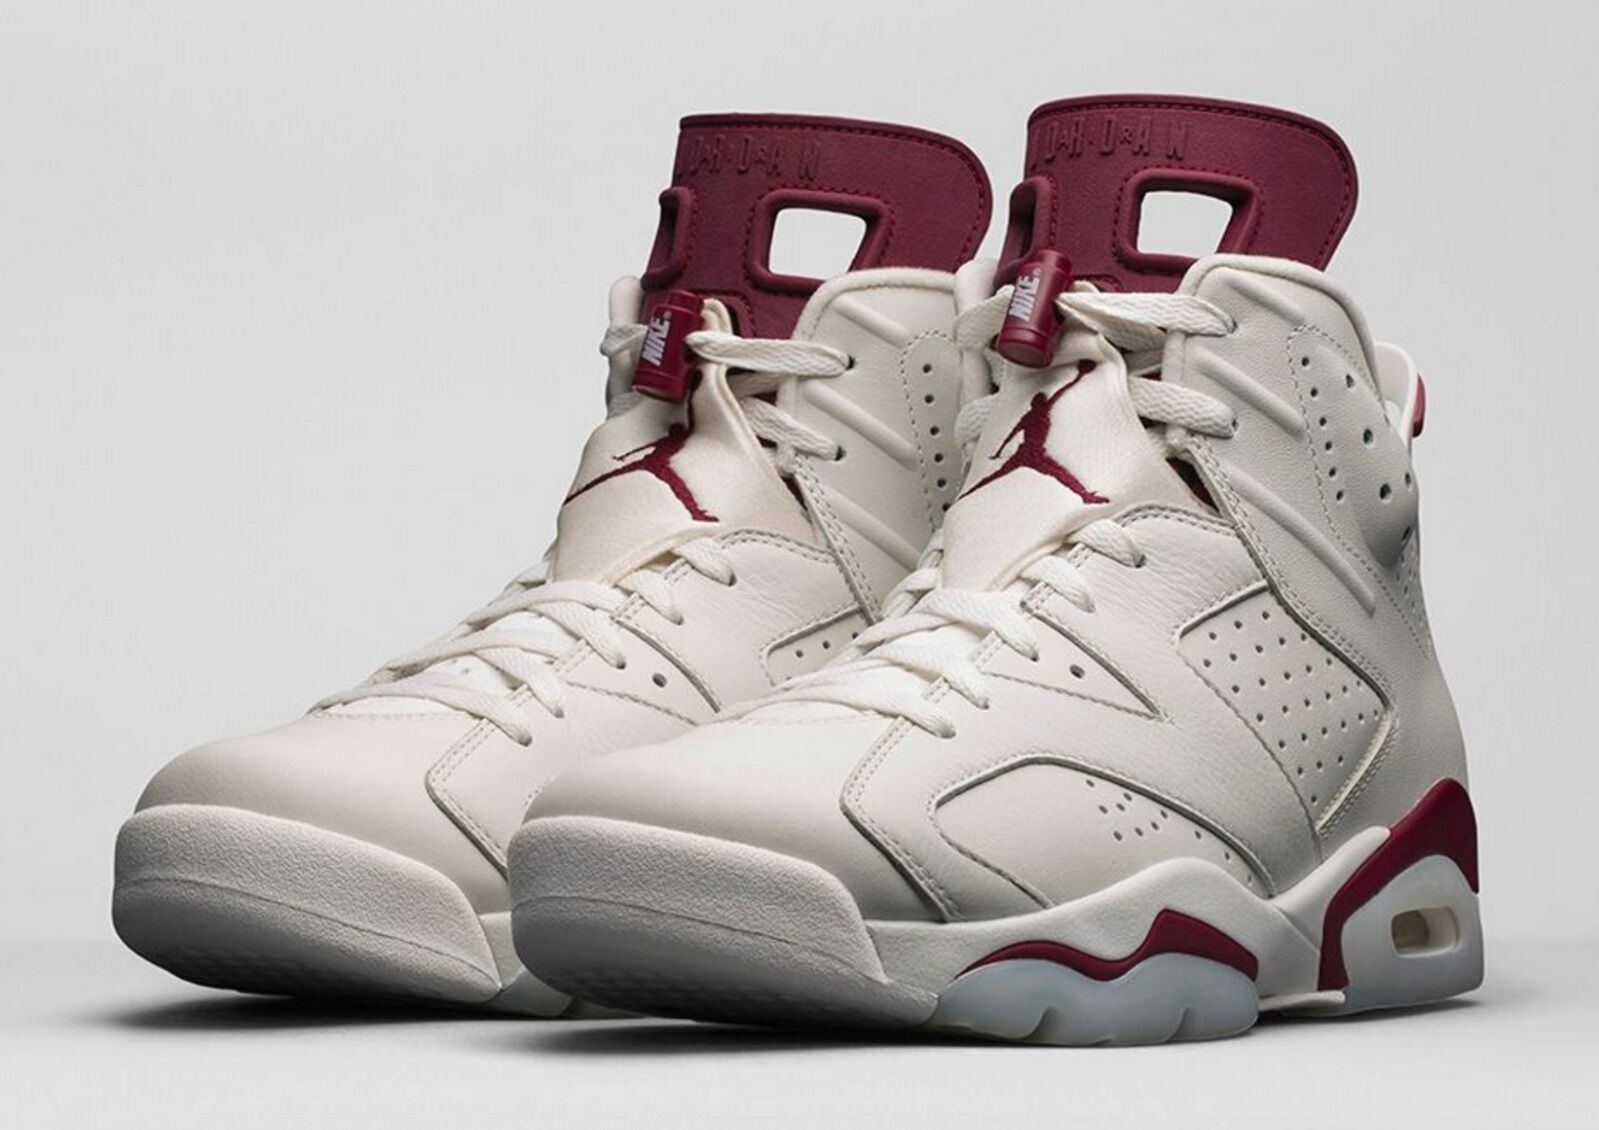 NIKE AIR JORDAN 6 RETRO - MAROON - Off blanc / New Maroon 384664 116 -